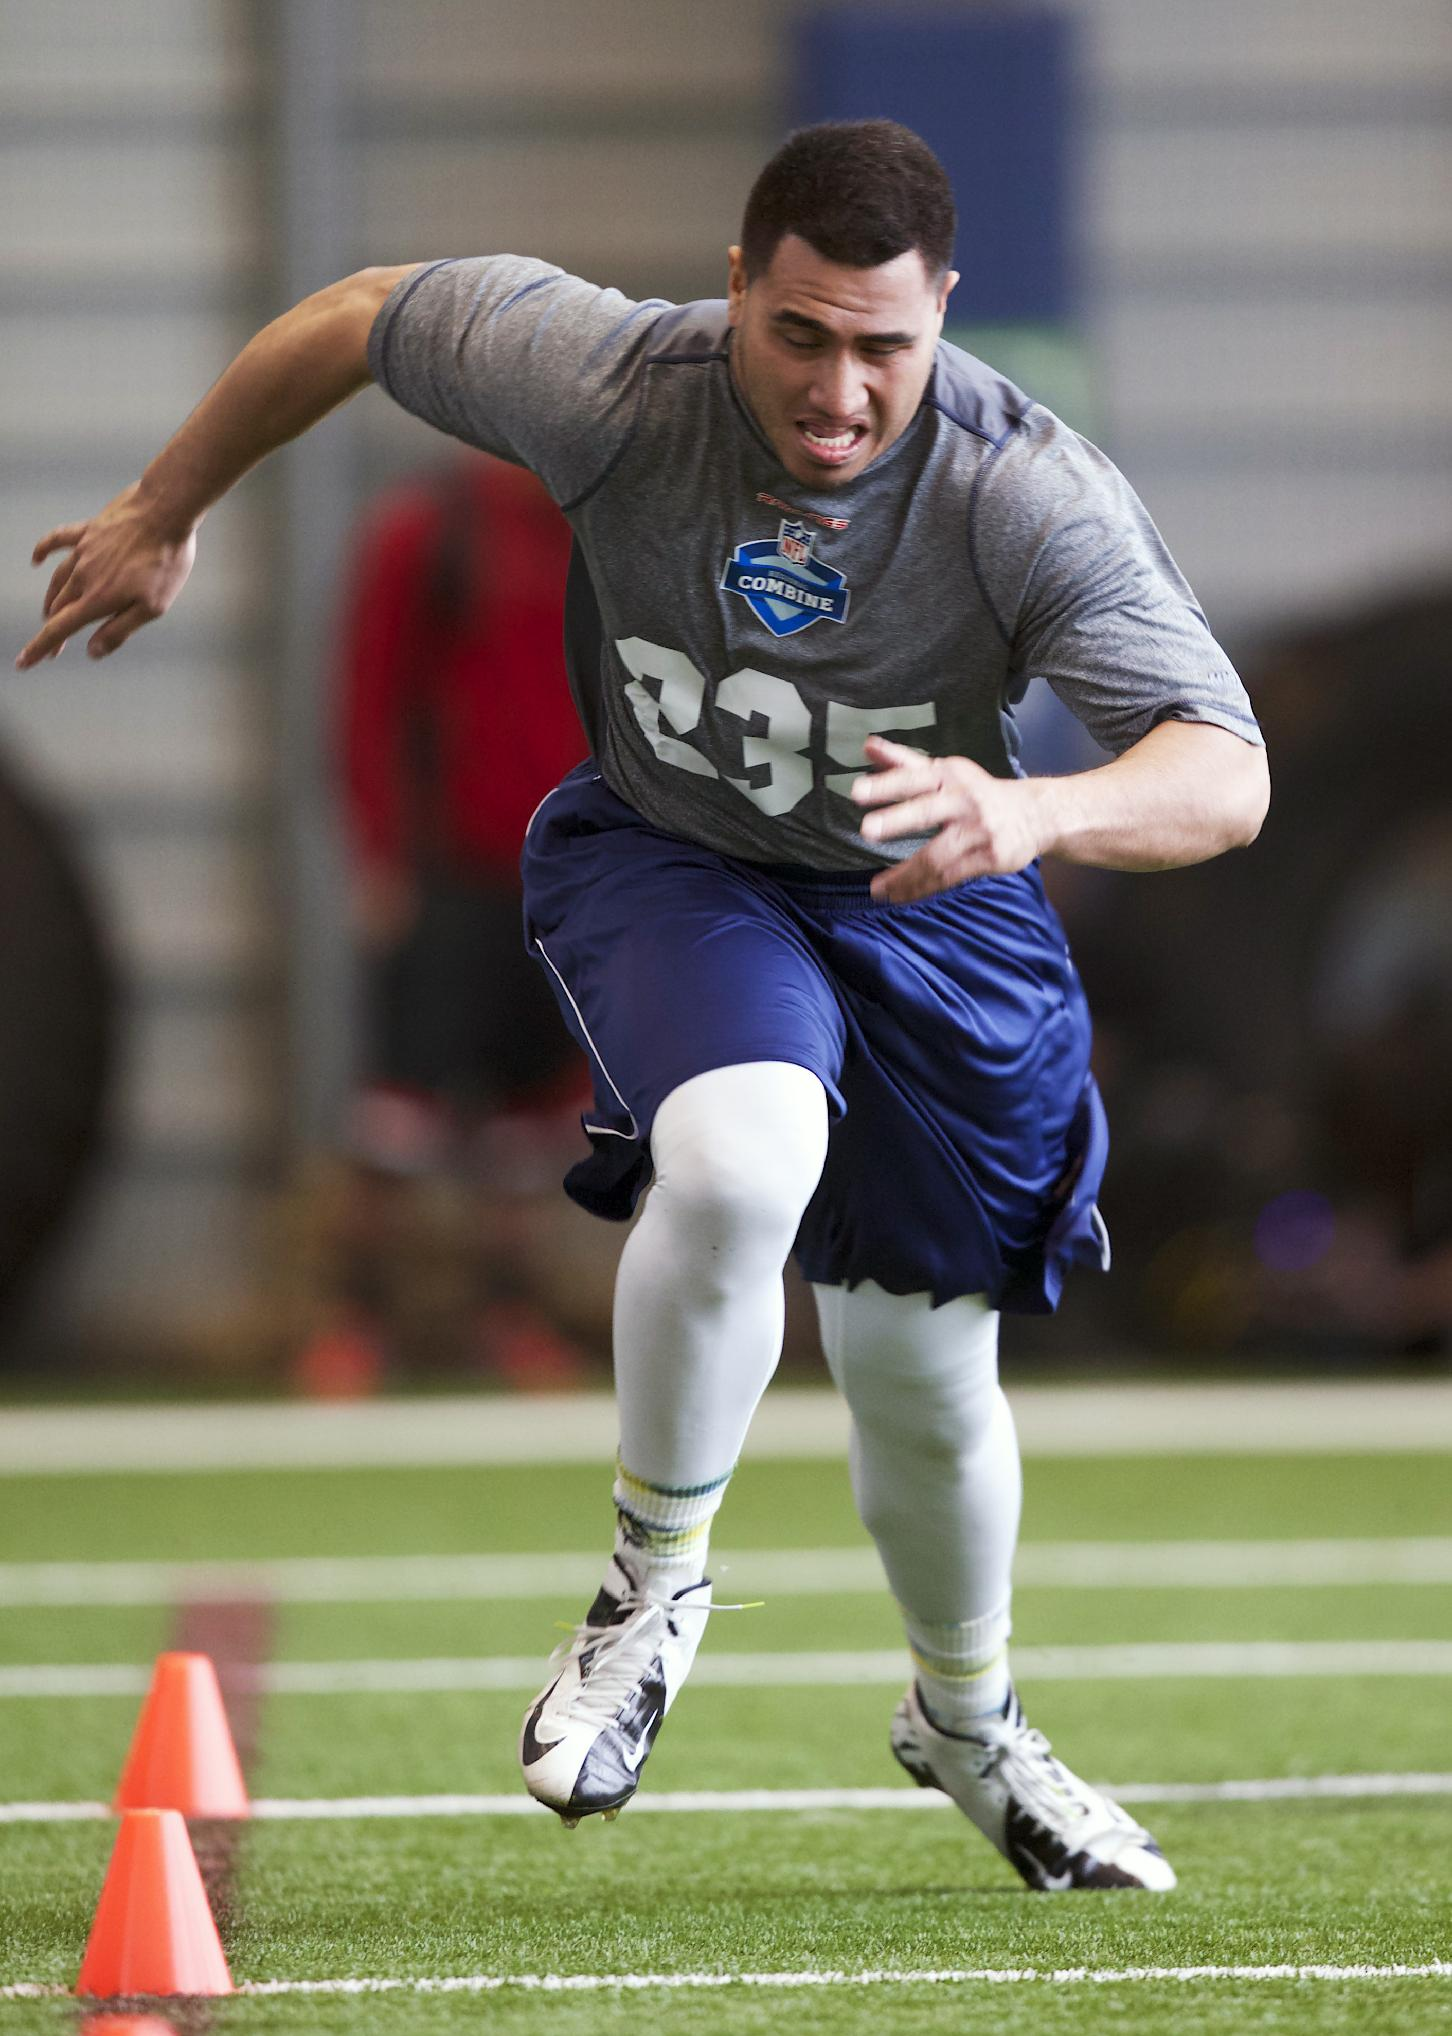 BYU running back Harvey Unga runs to the finish of the short shuttle drill Saturday, March 22, 2014, during practice drills at an NFL football regional combine in Renton, Wash